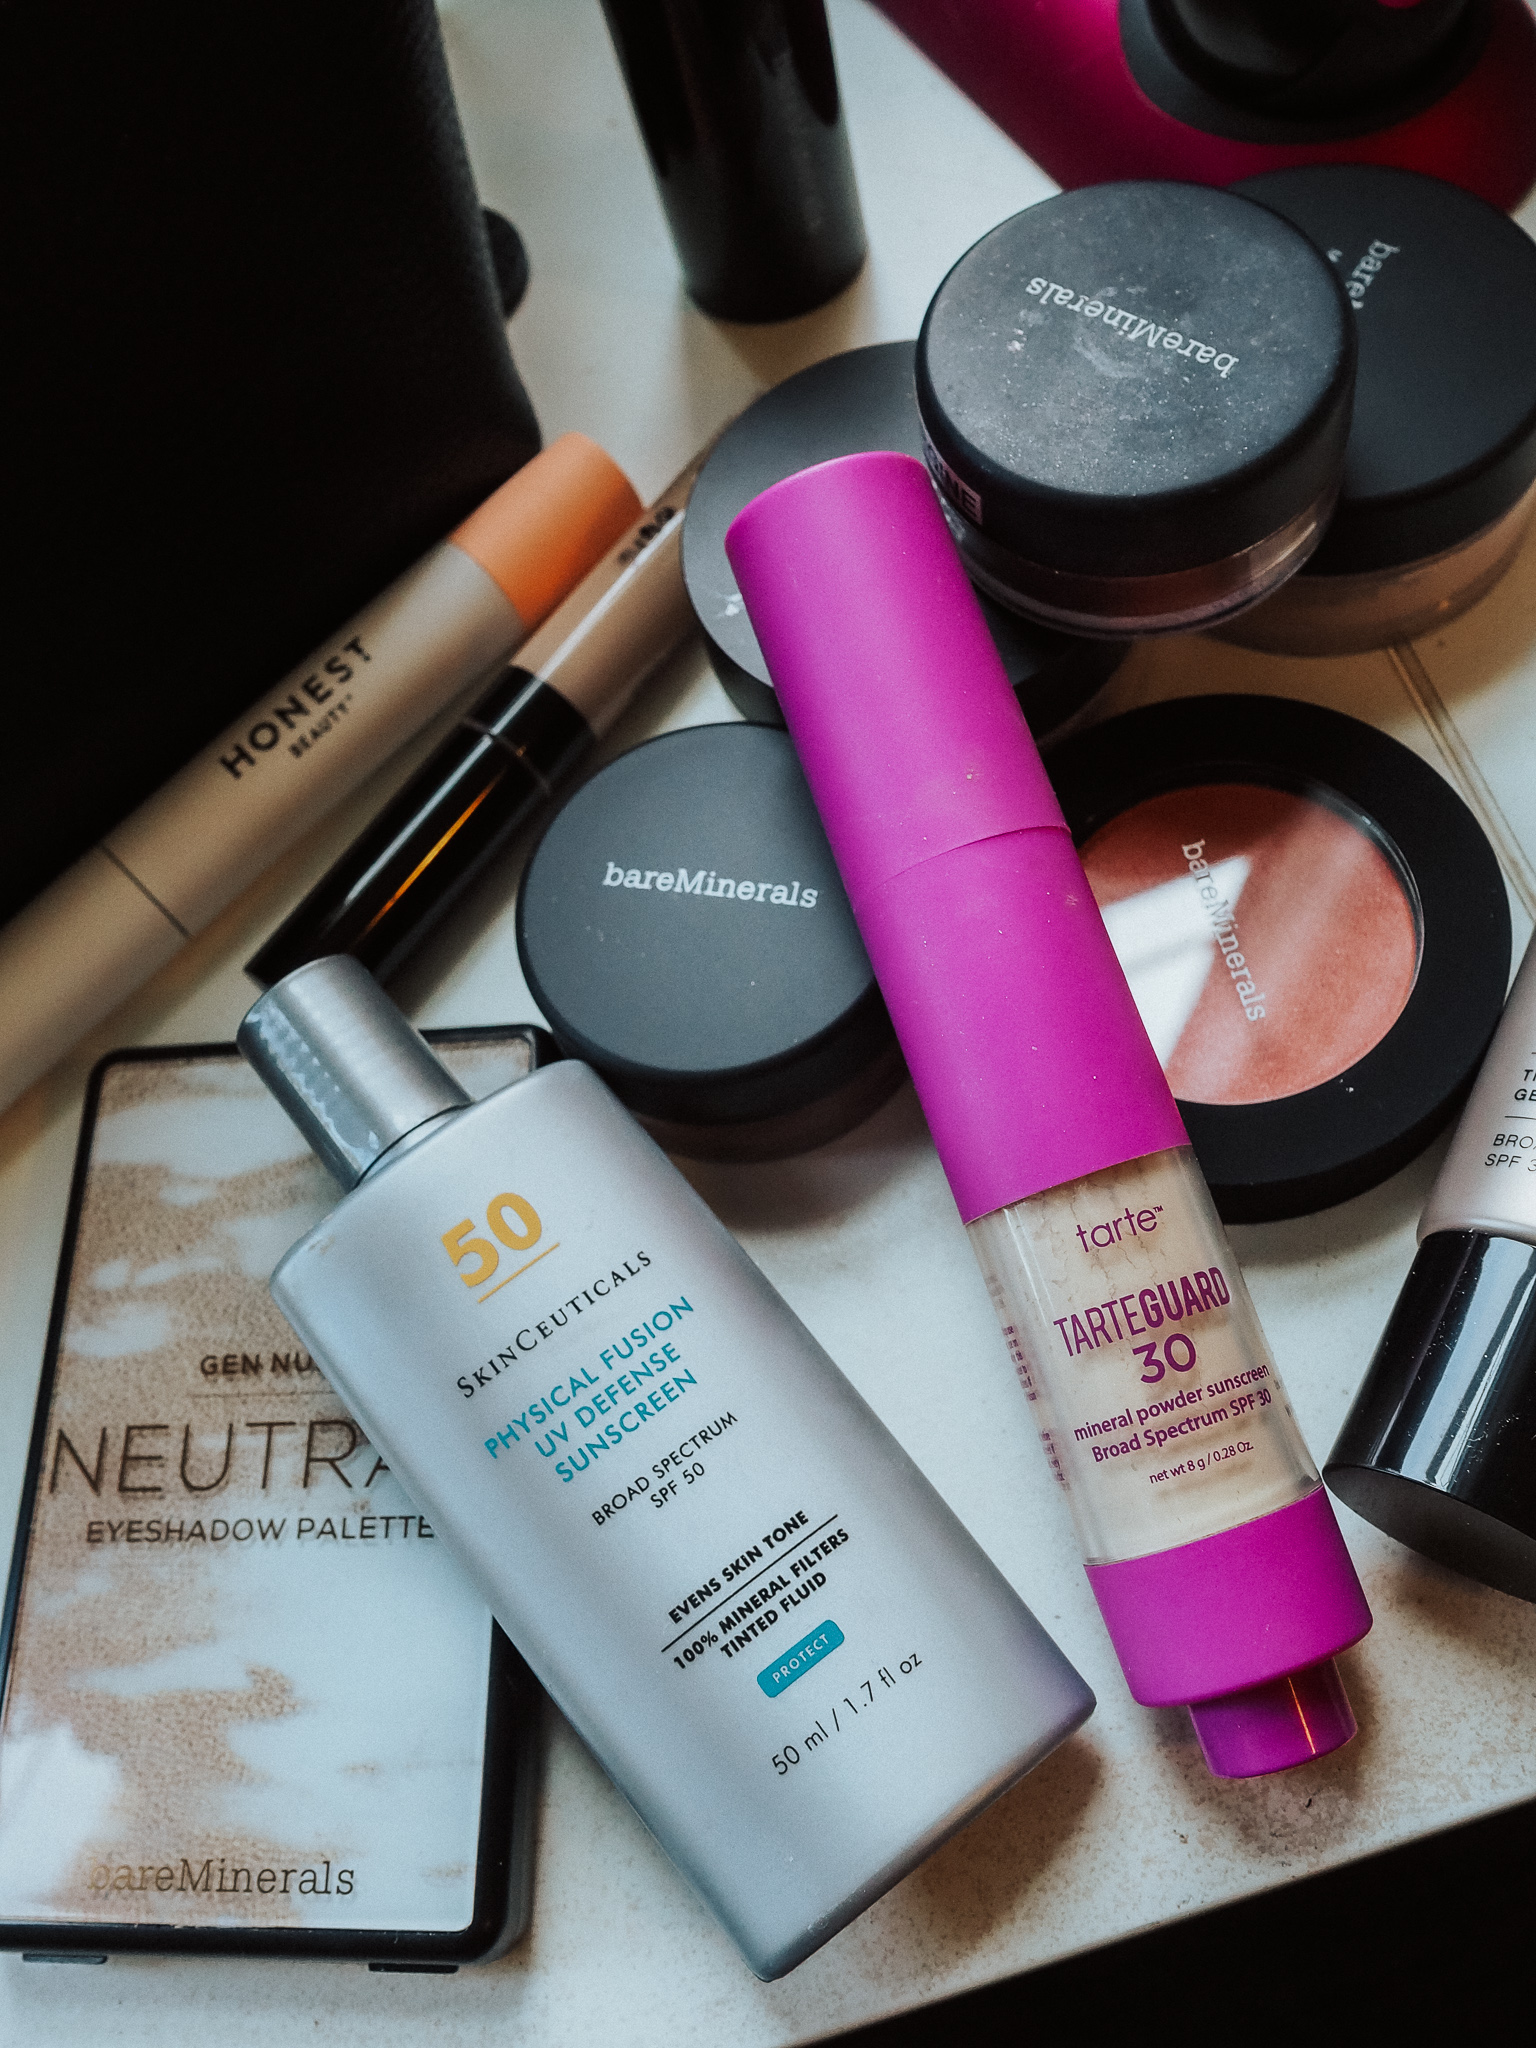 Find out the easiest daily SPF routine in this blog post by Kelsey of Blondes & Bagels. Learn how much SPF is right and how to reapply easily.